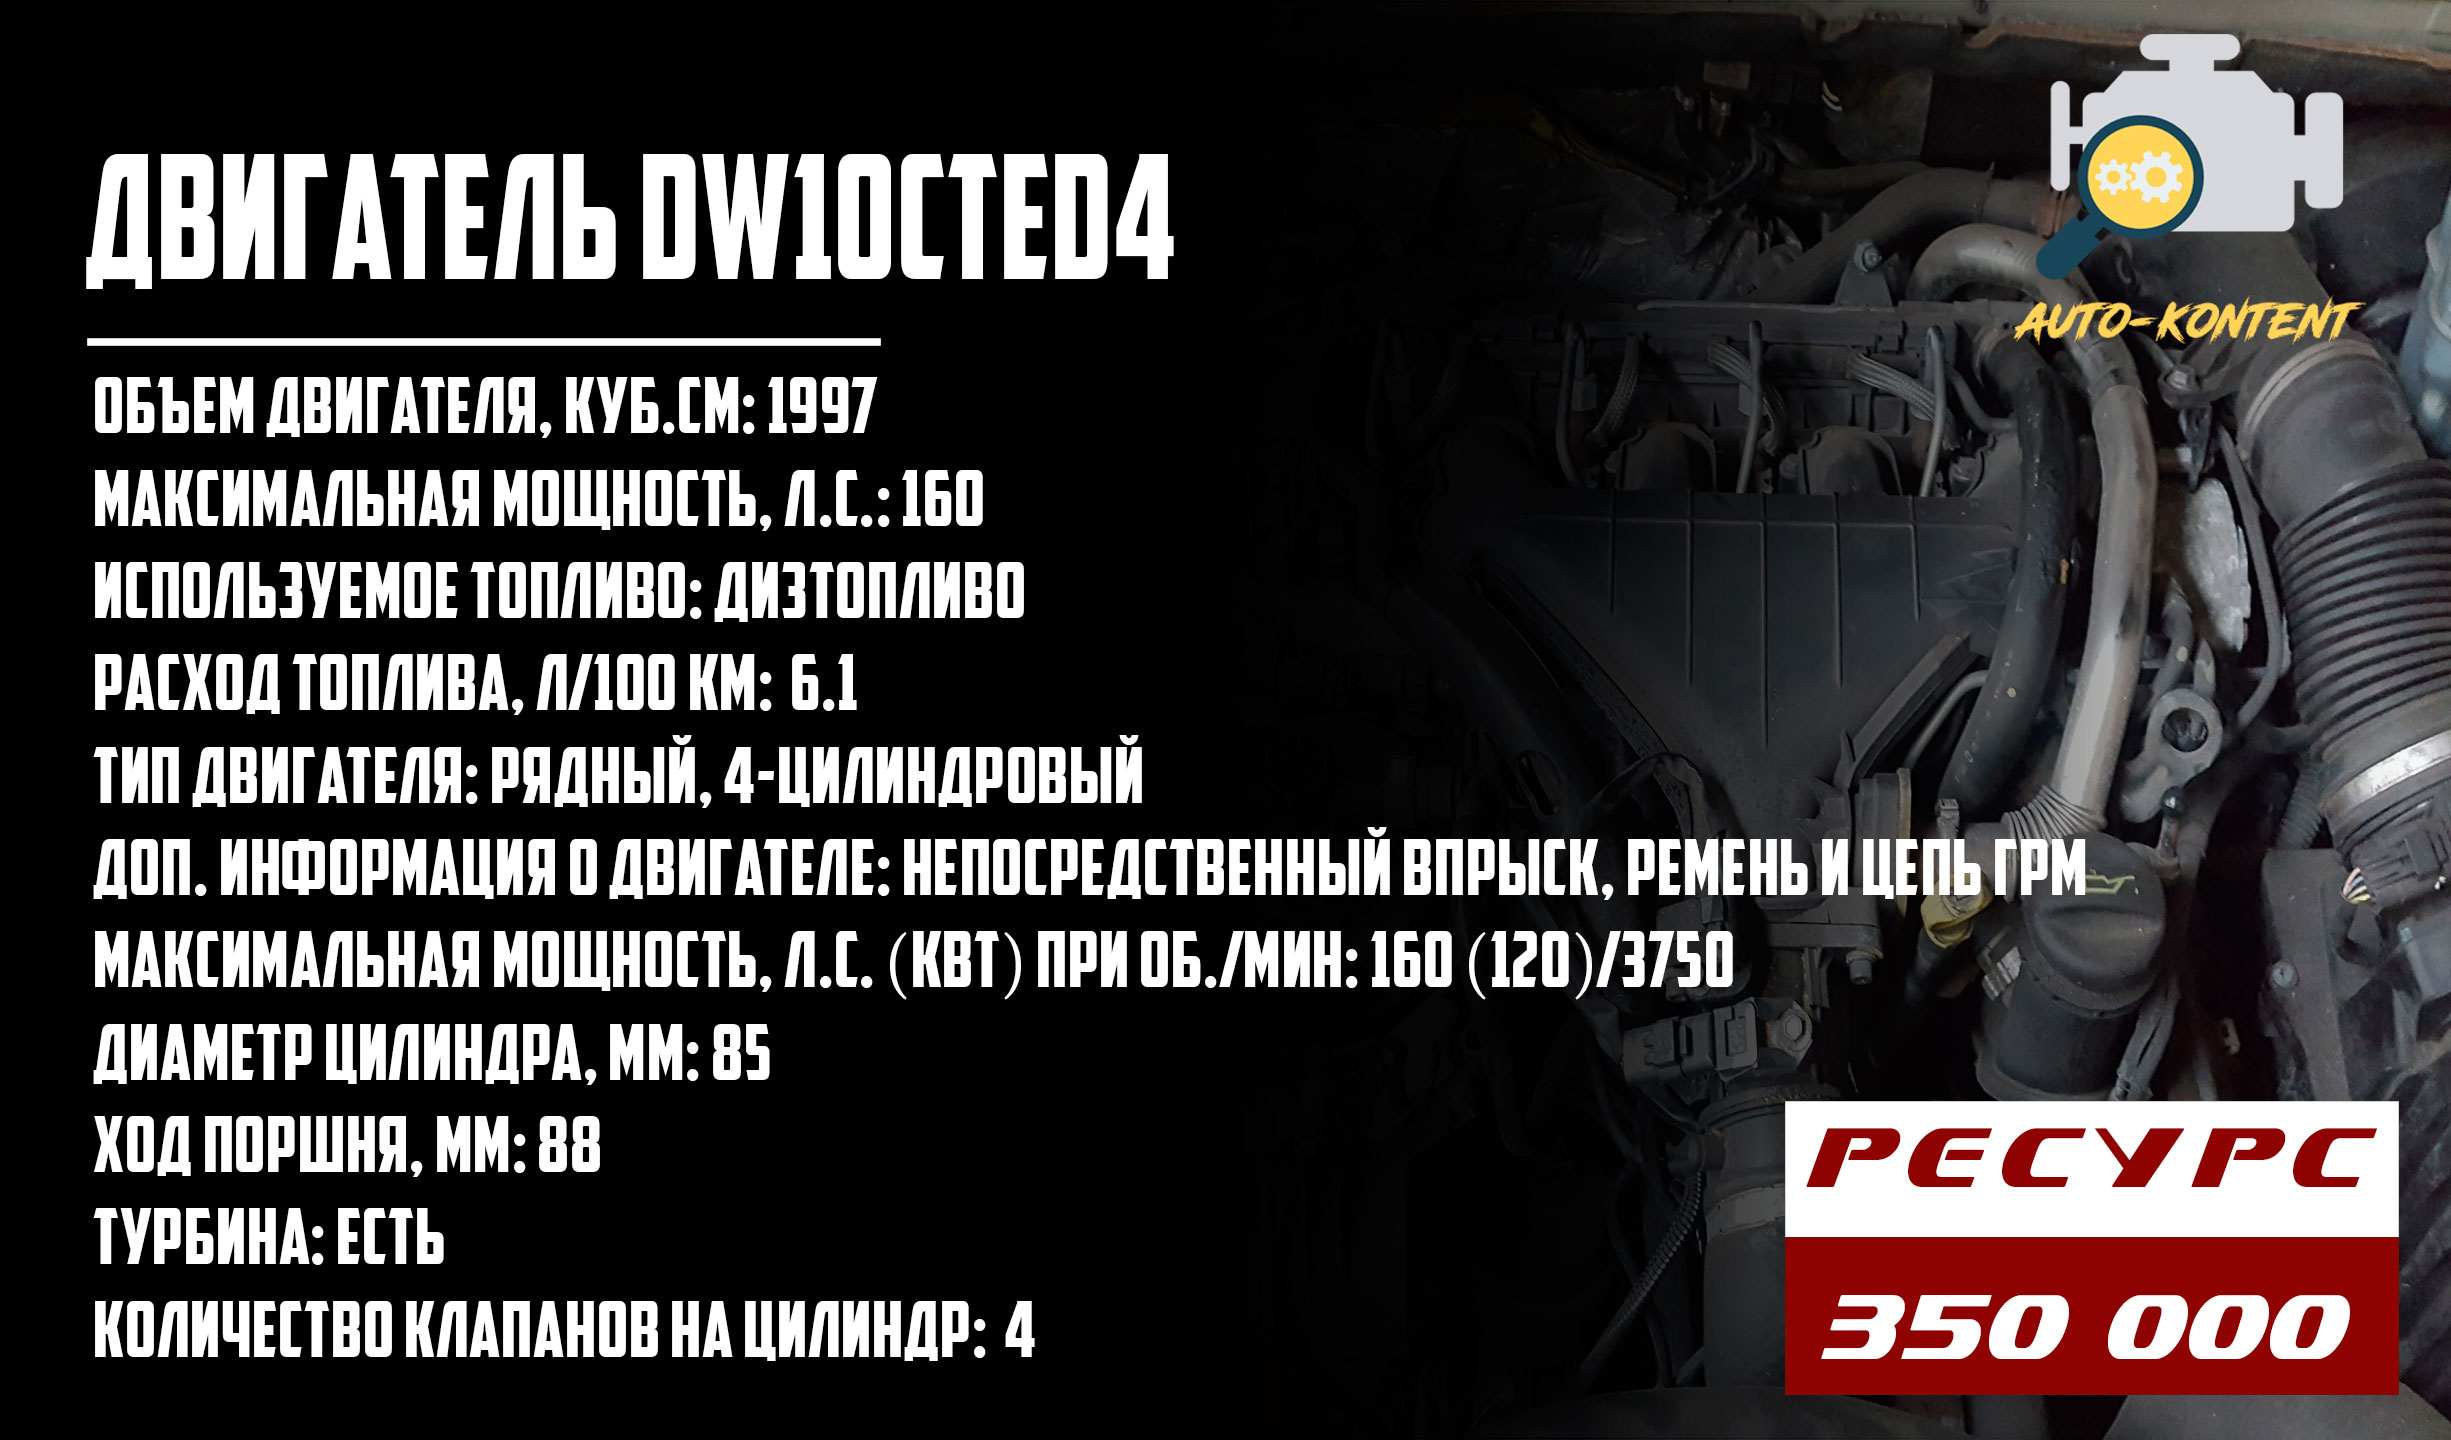 DW10СTED4